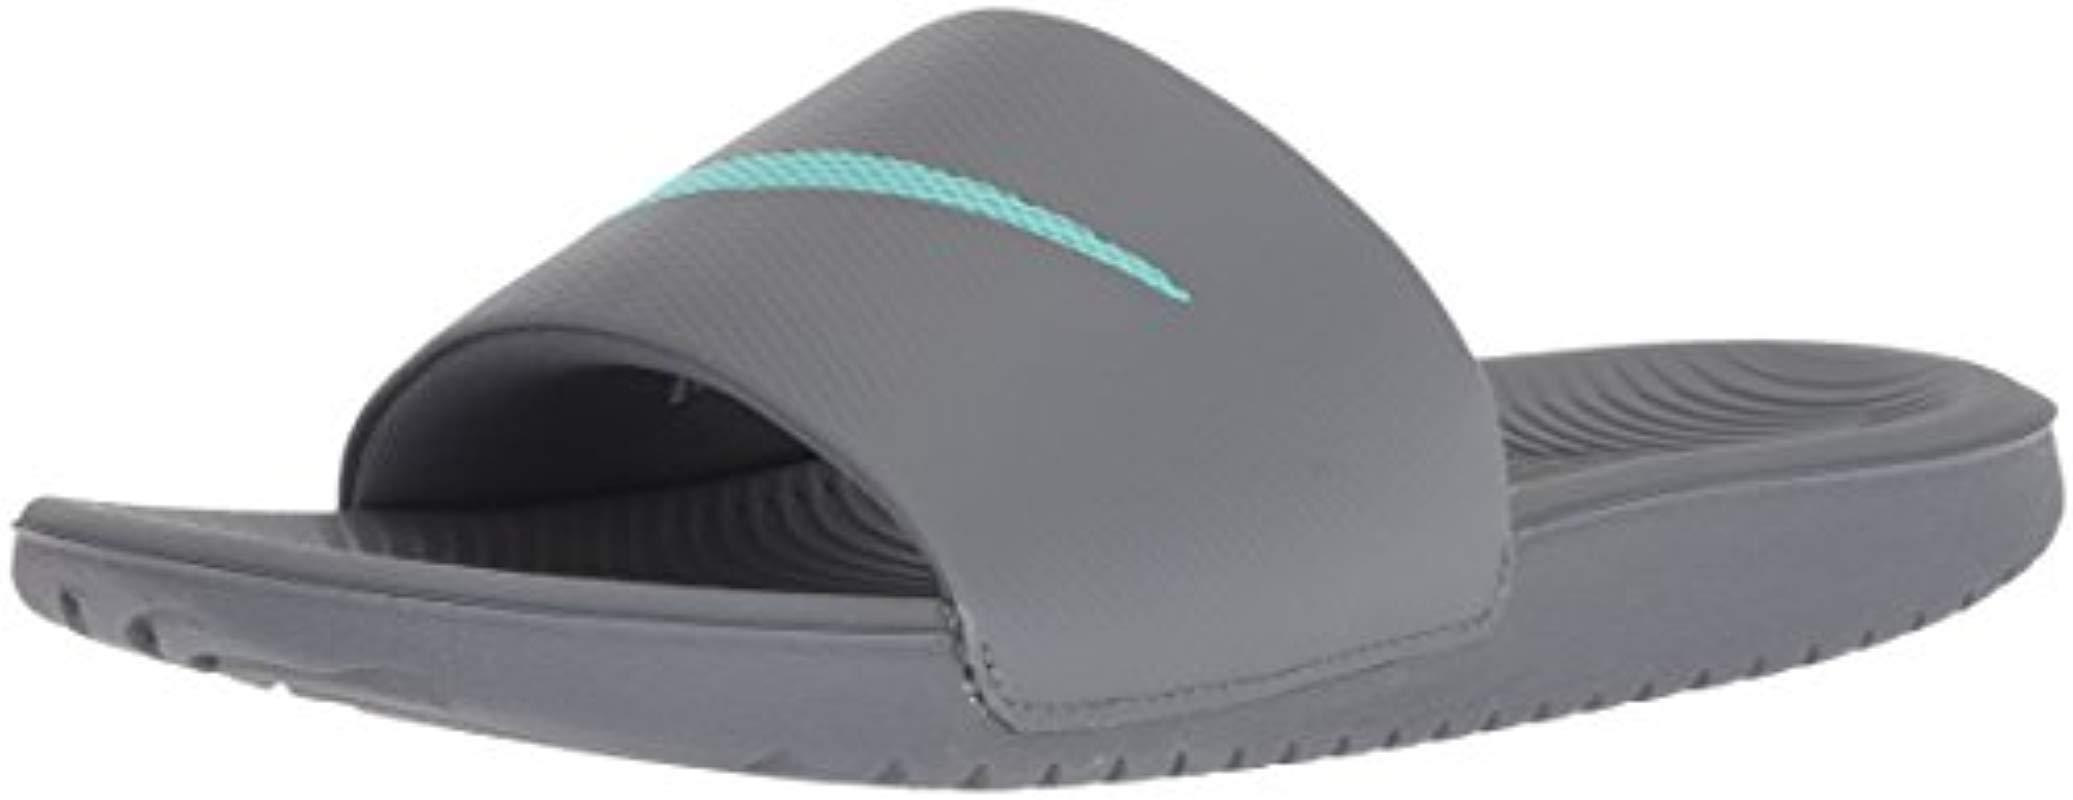 c53a2a28d7c5 Lyst - Nike Kawa Slide Sandal in Gray - Save 20%